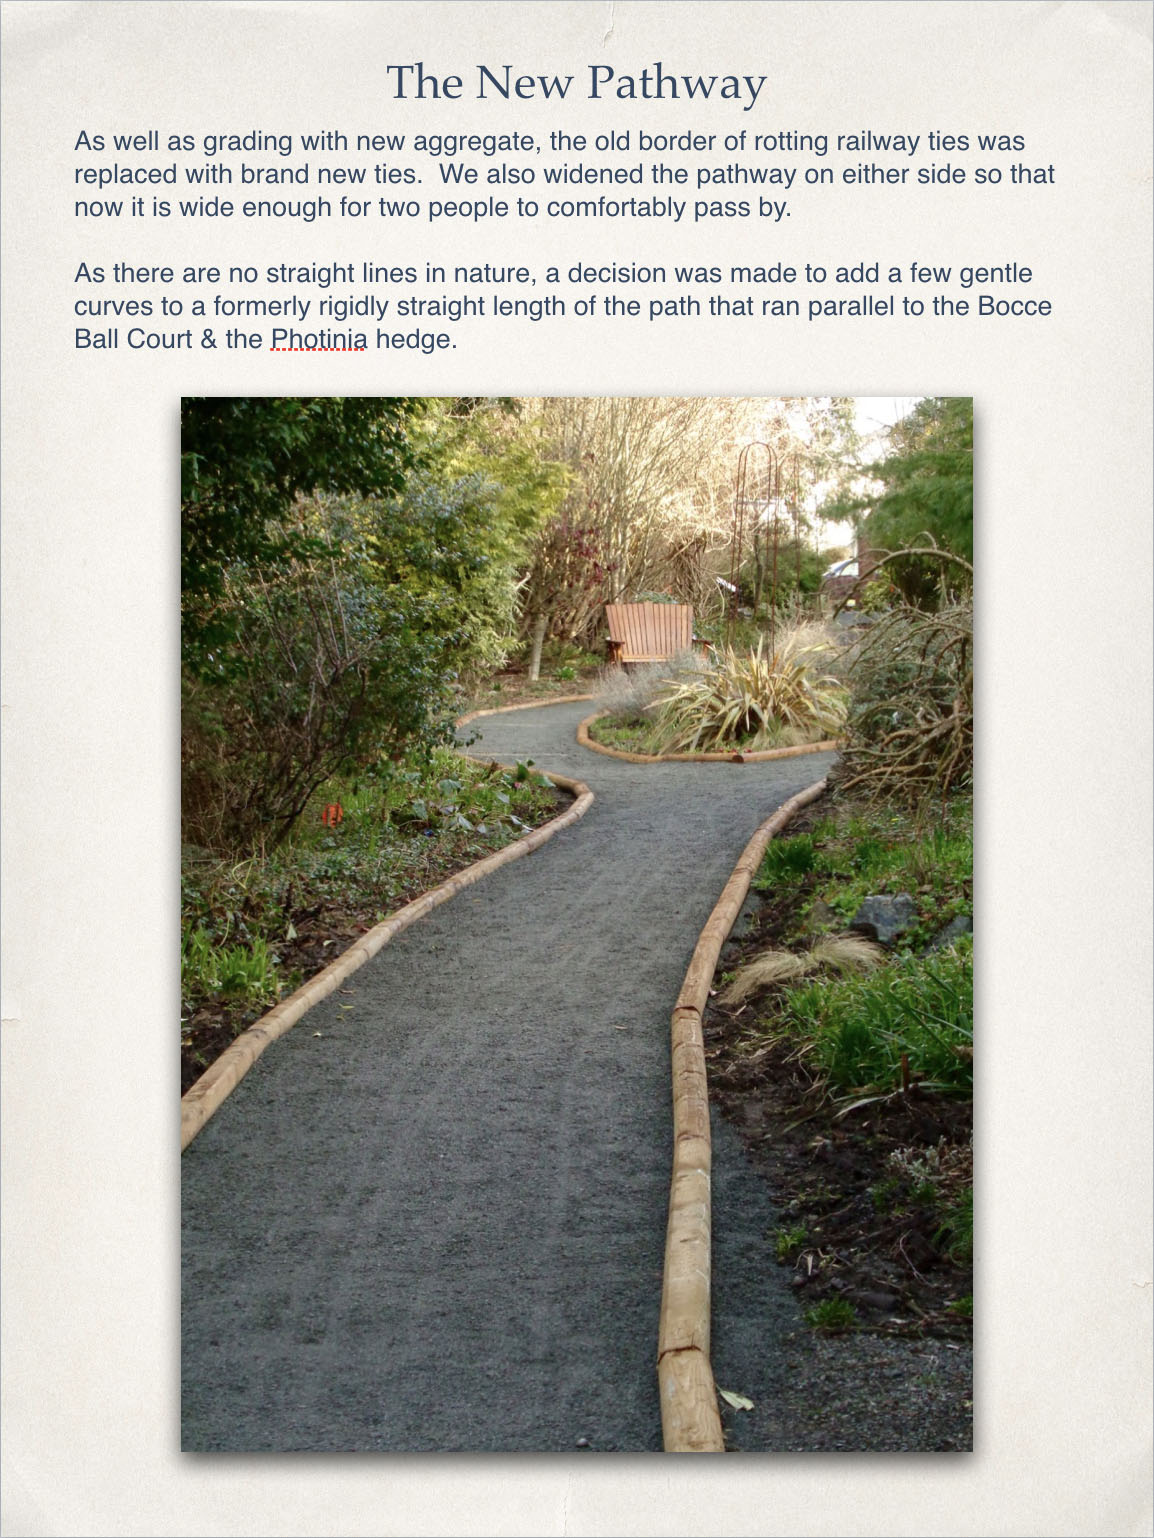 12 - The New Pathway.jpg